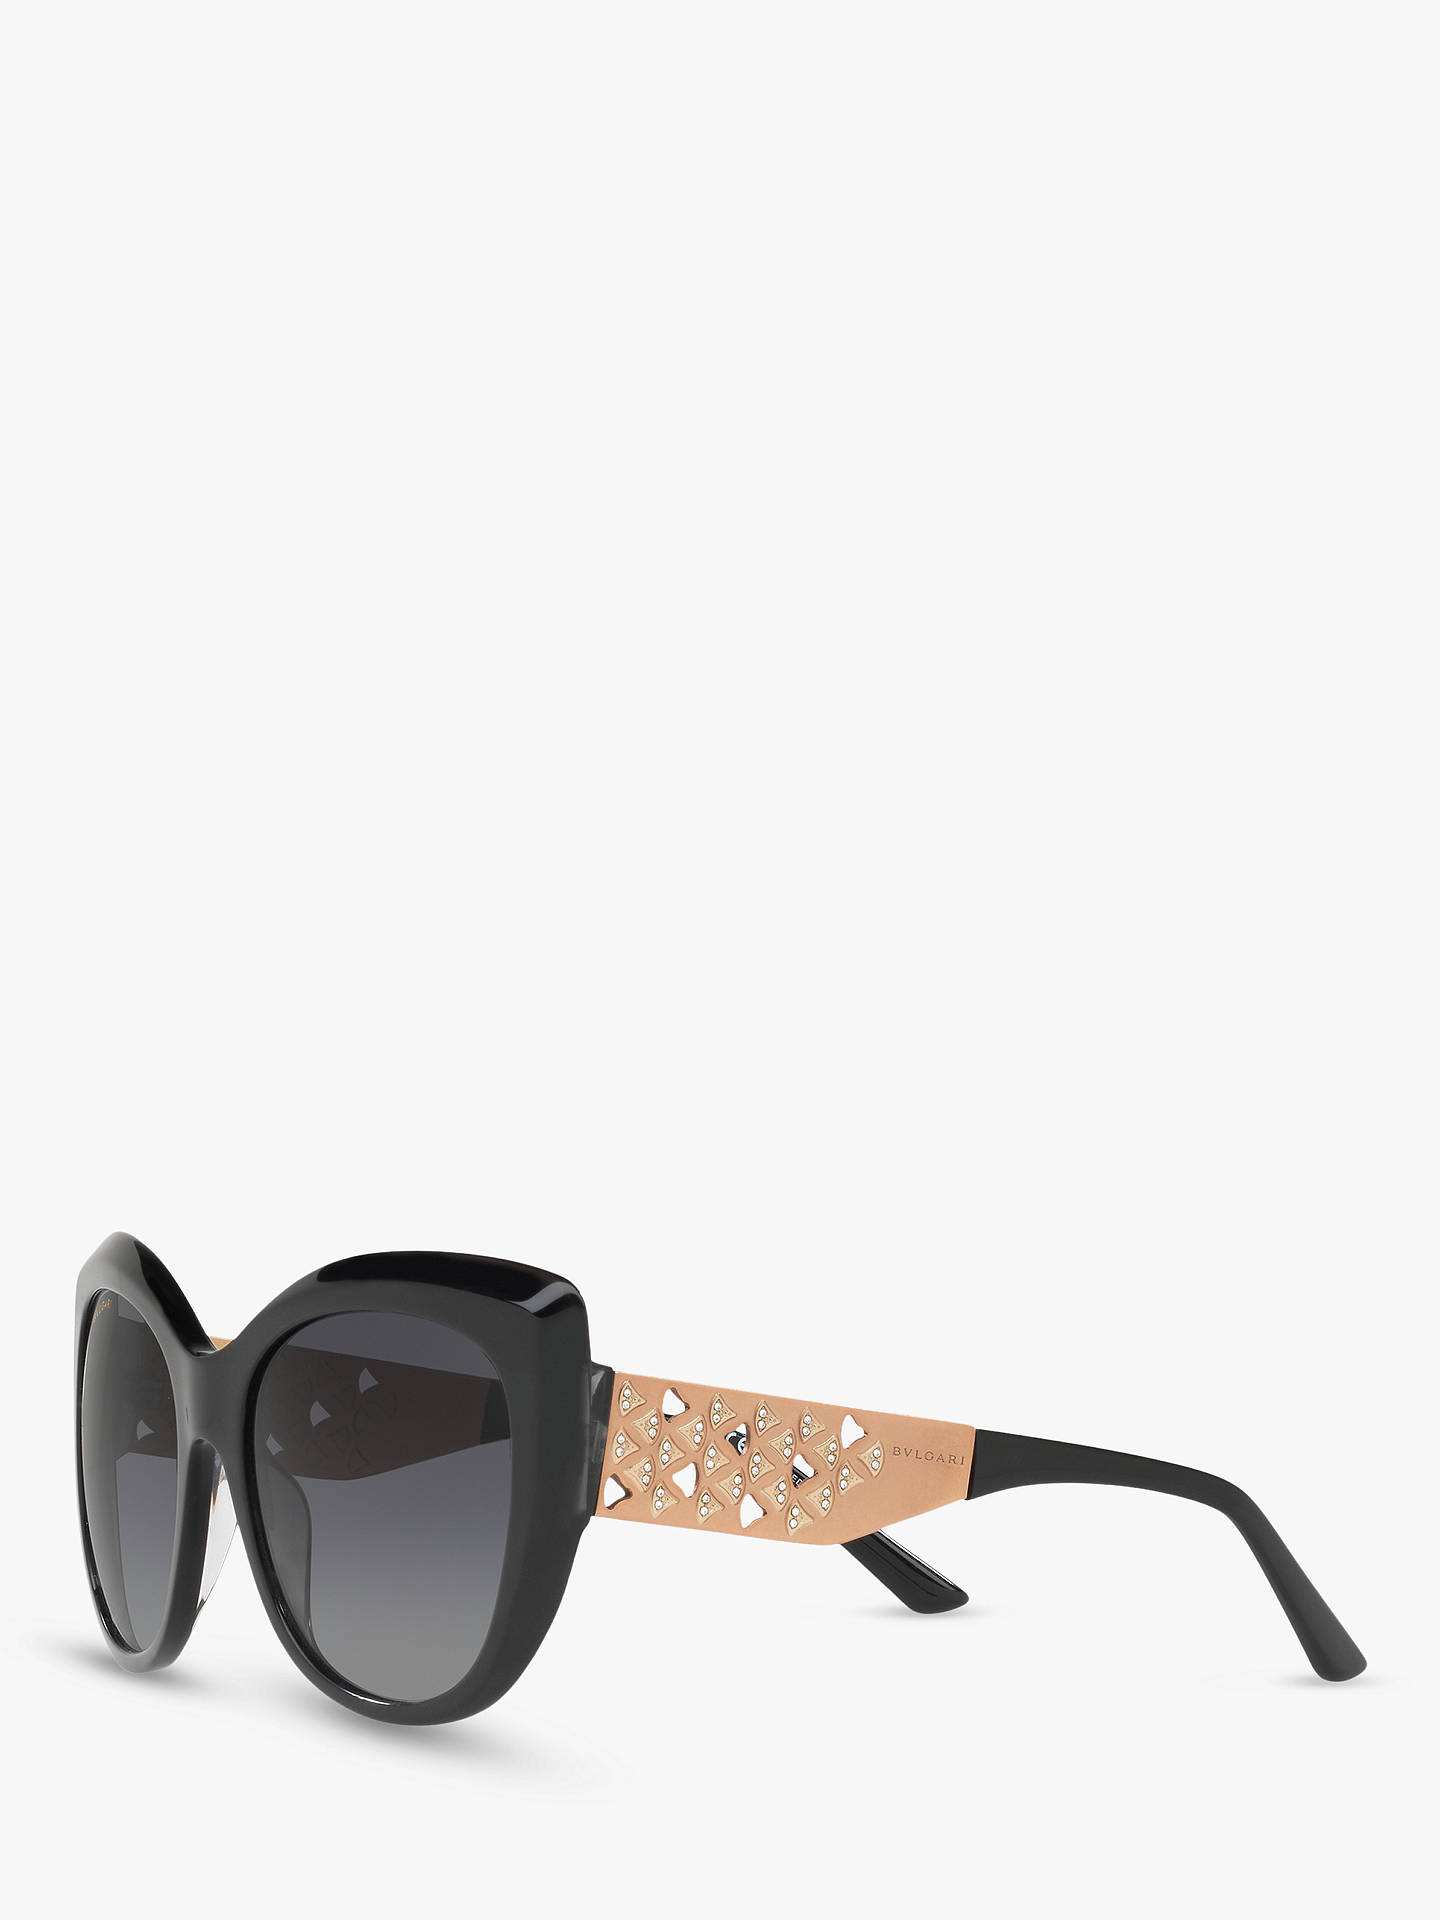 BuyBVLGARI BV8198B Women's Polarised Chunky Cat's Eye Sunglasses, Black/Grey Gradient Online at johnlewis.com